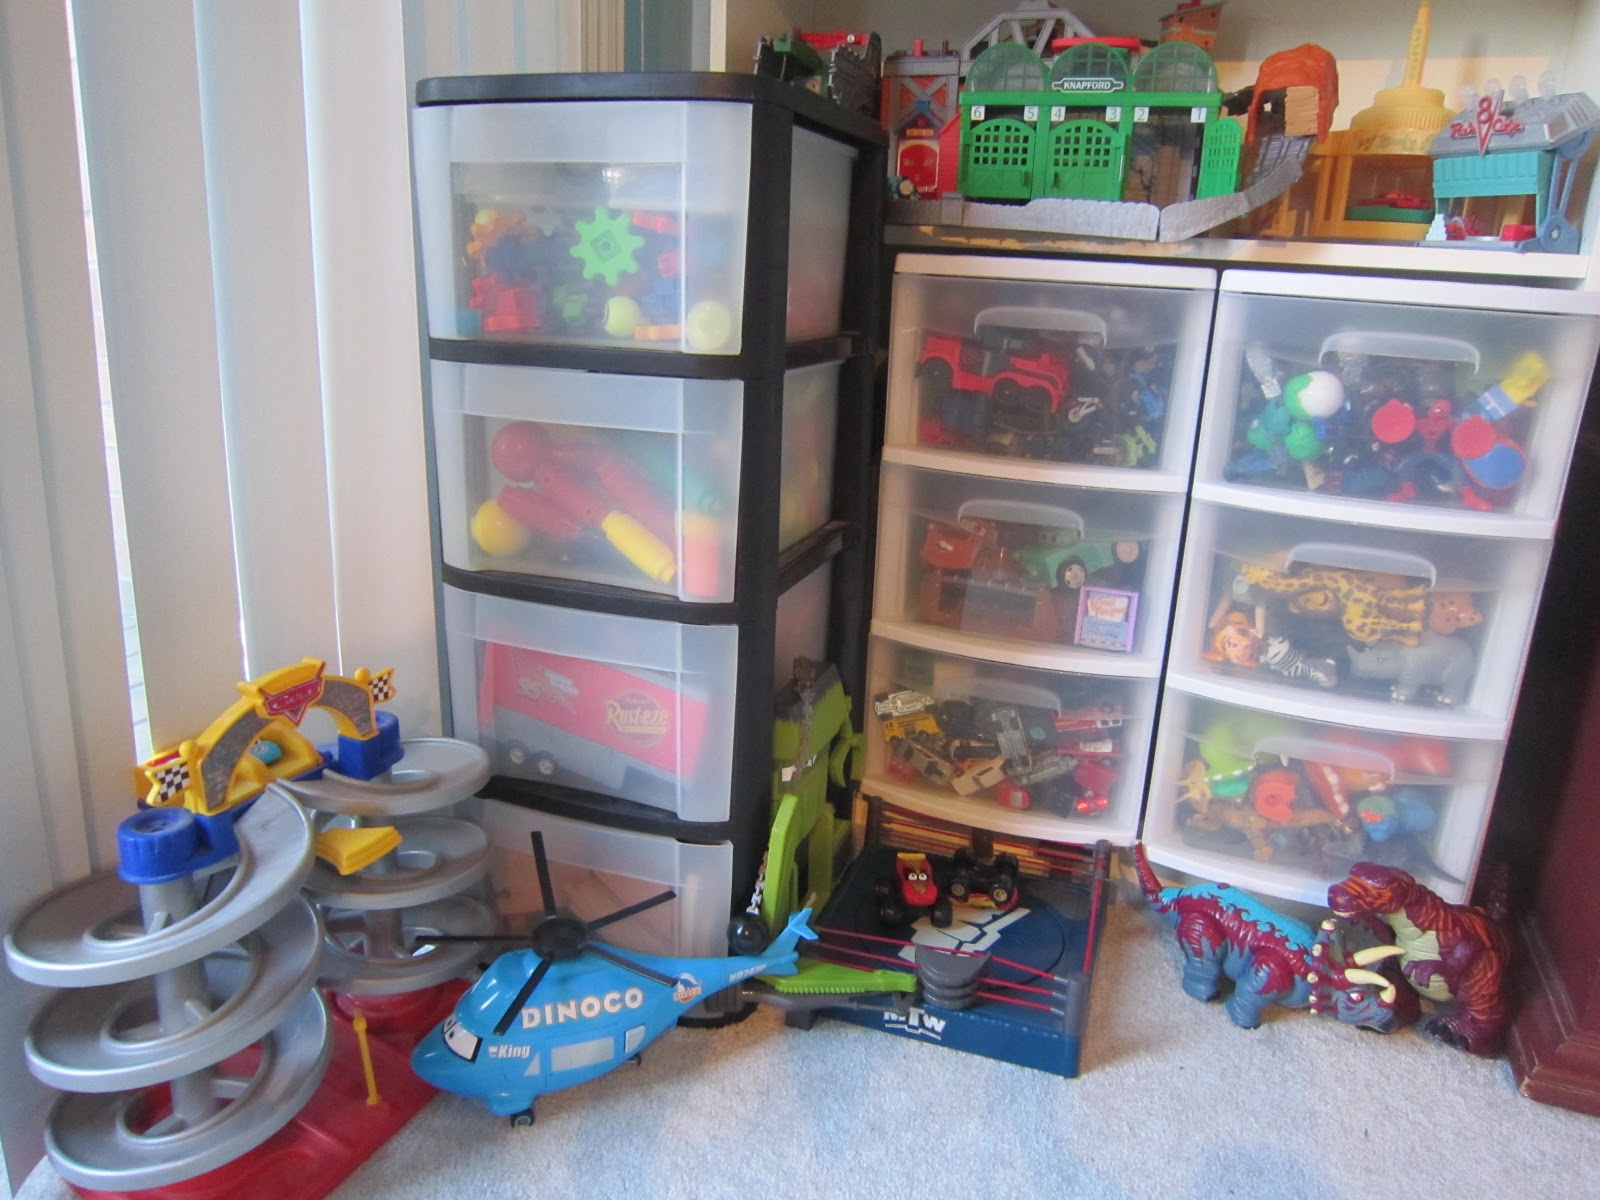 10 Types Of Toy Organizers For Kids Bedrooms And Playrooms: Little Townhome Love: Playroom Organization